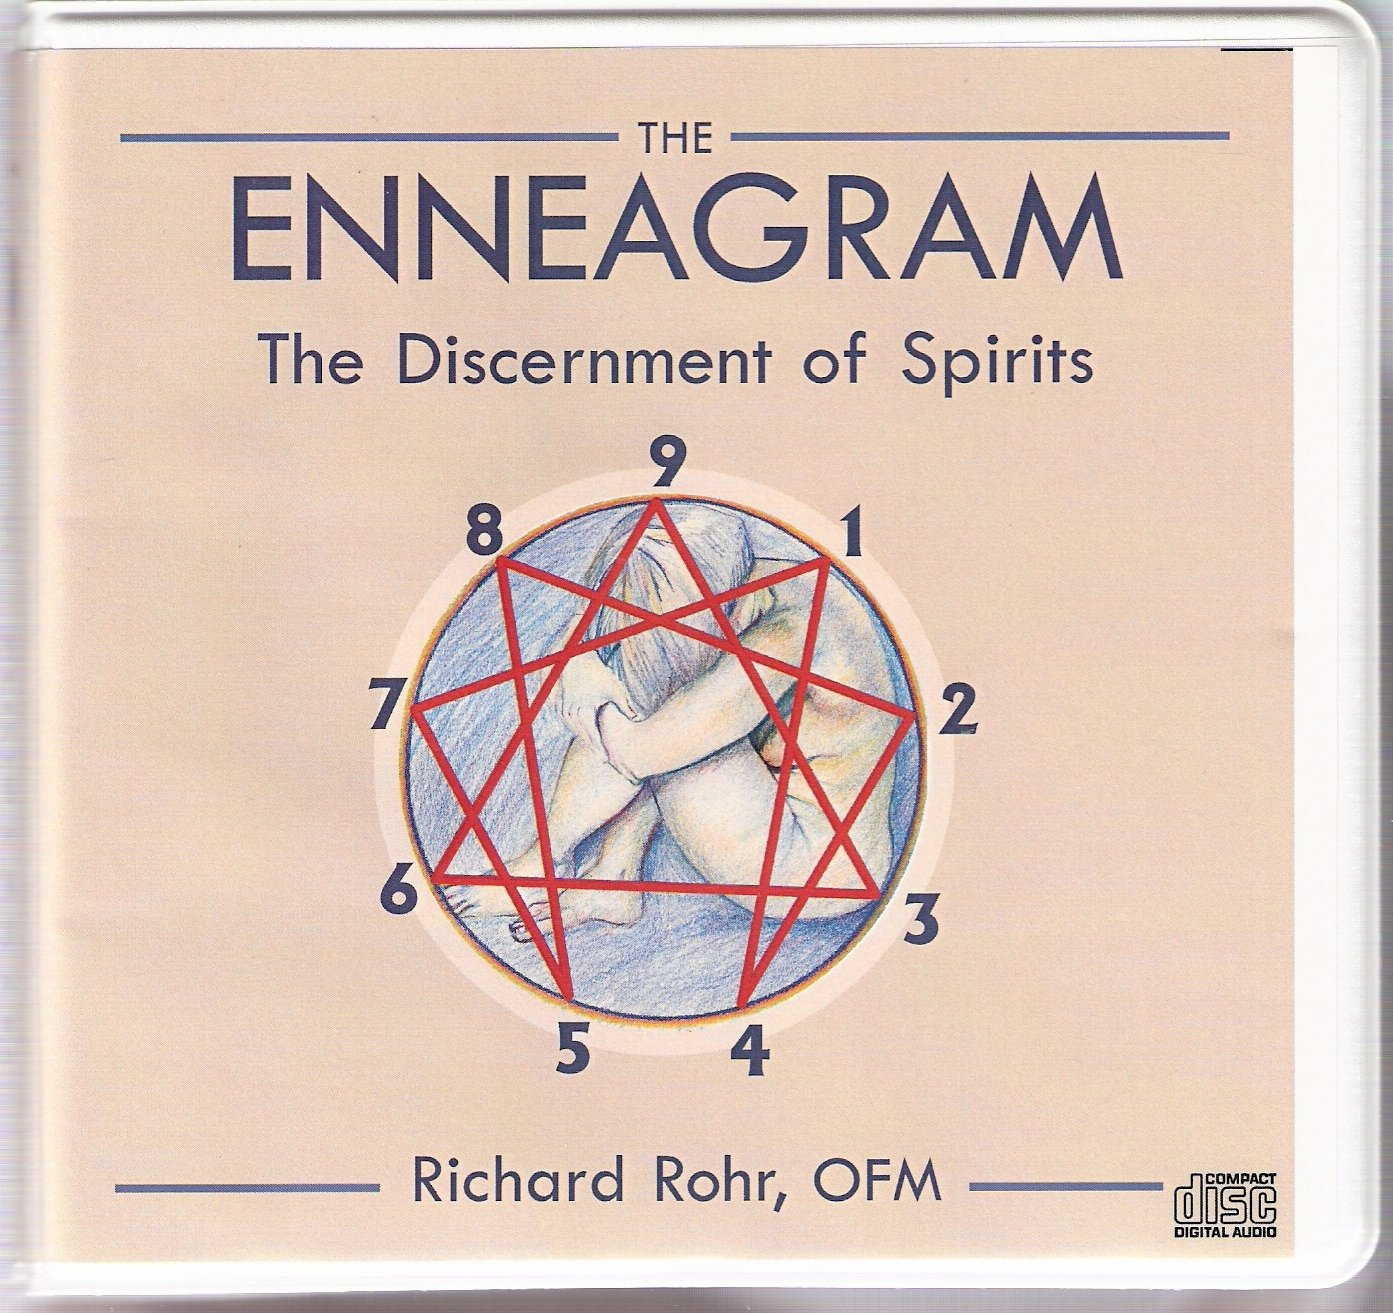 Image result for father richard rohr enneagram